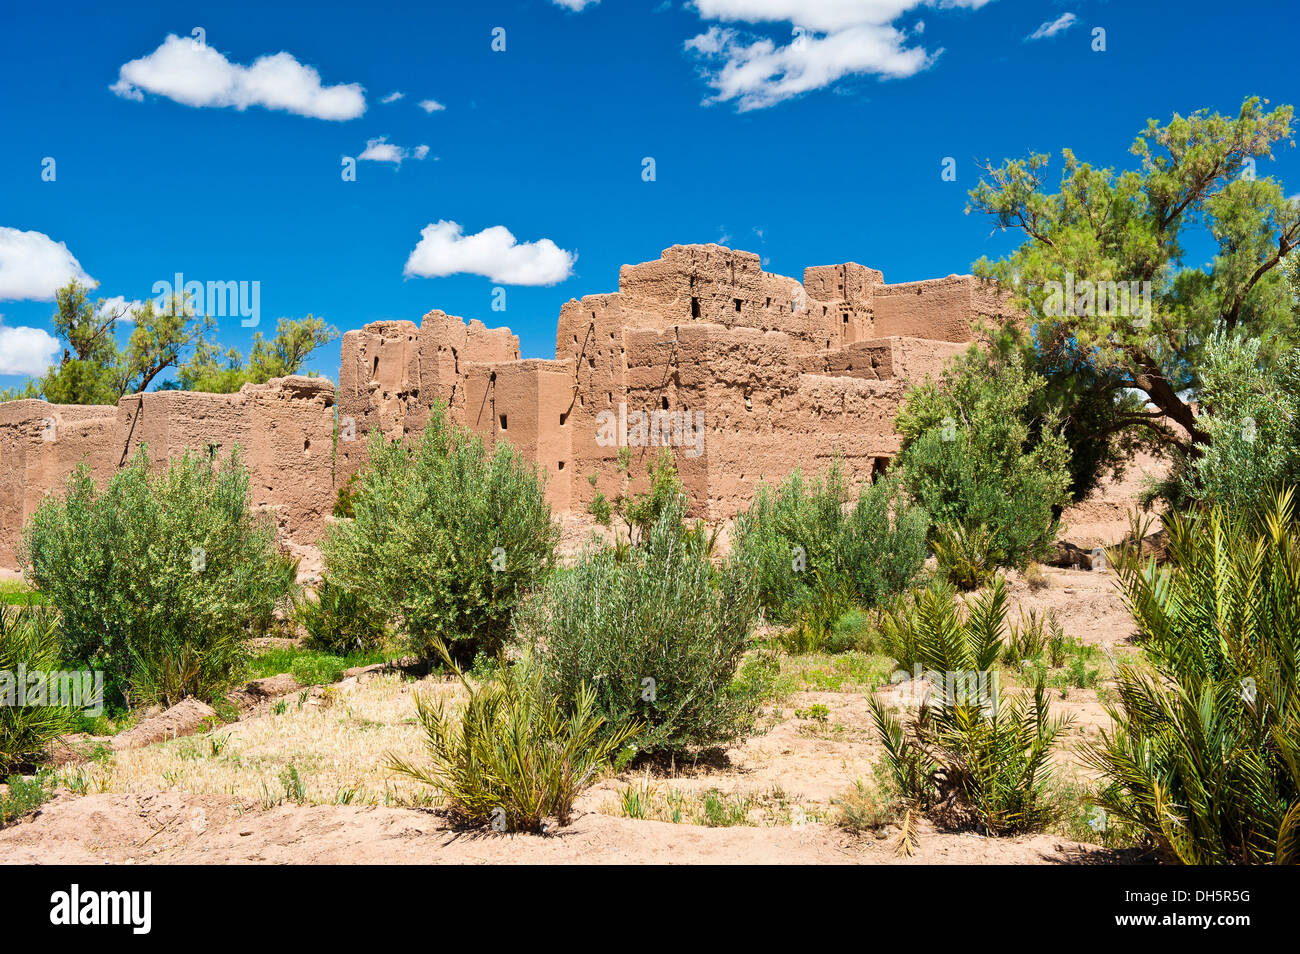 Decaying kasbah surrounded by trees and shrubs, mud fortress of the Berber people, Tighremt, lower Dades Valley - Stock Image